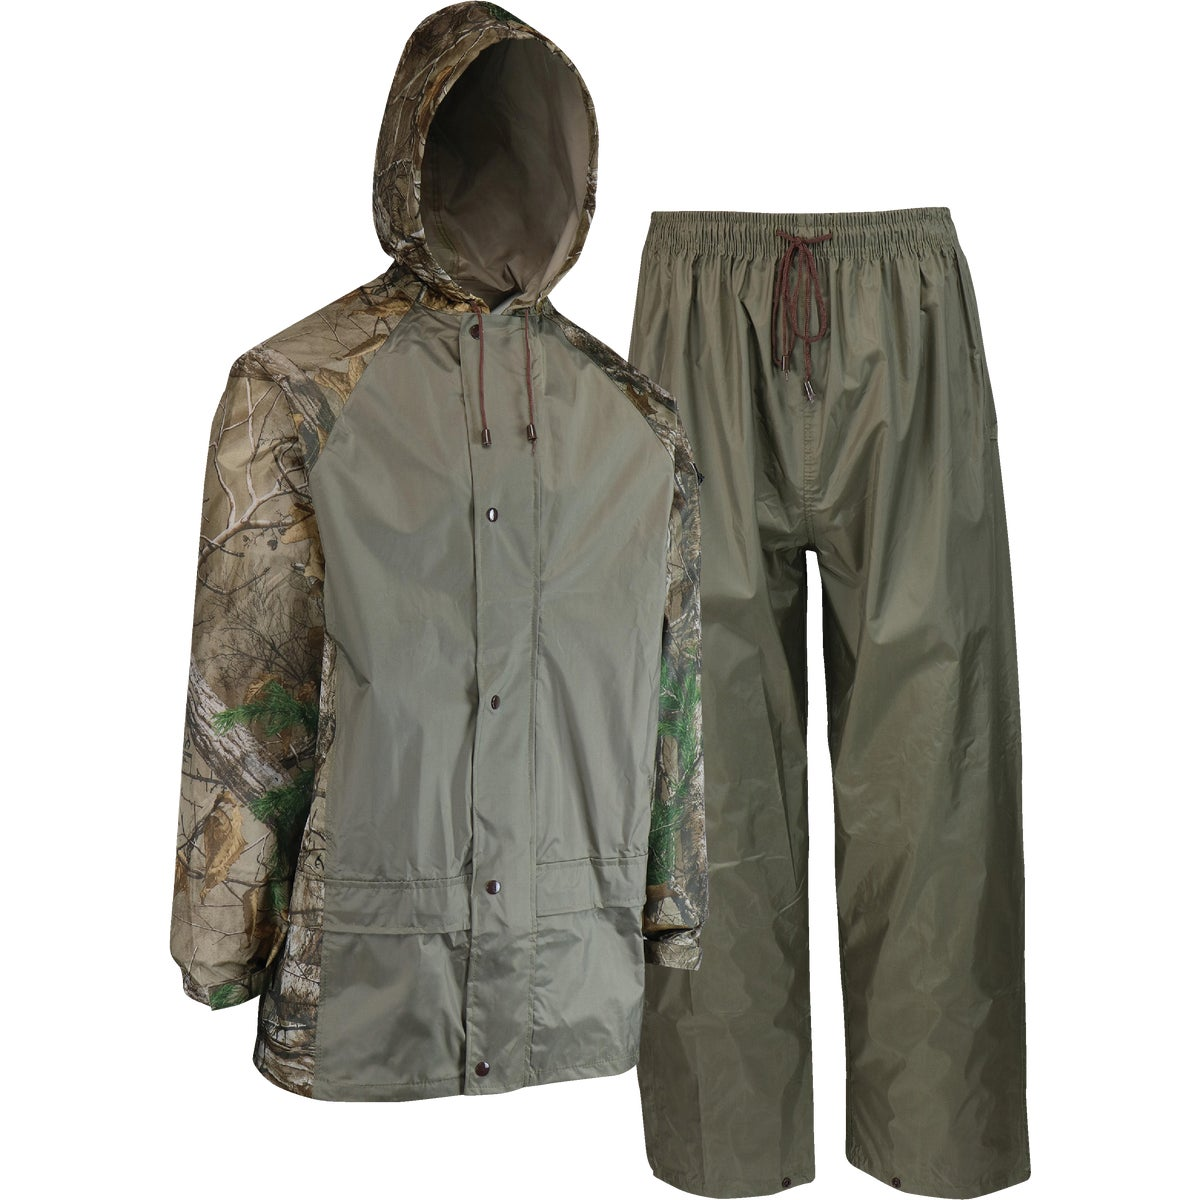 West Chester 2-Piece RealTree Camo Rain Suit, RE46200/2XL